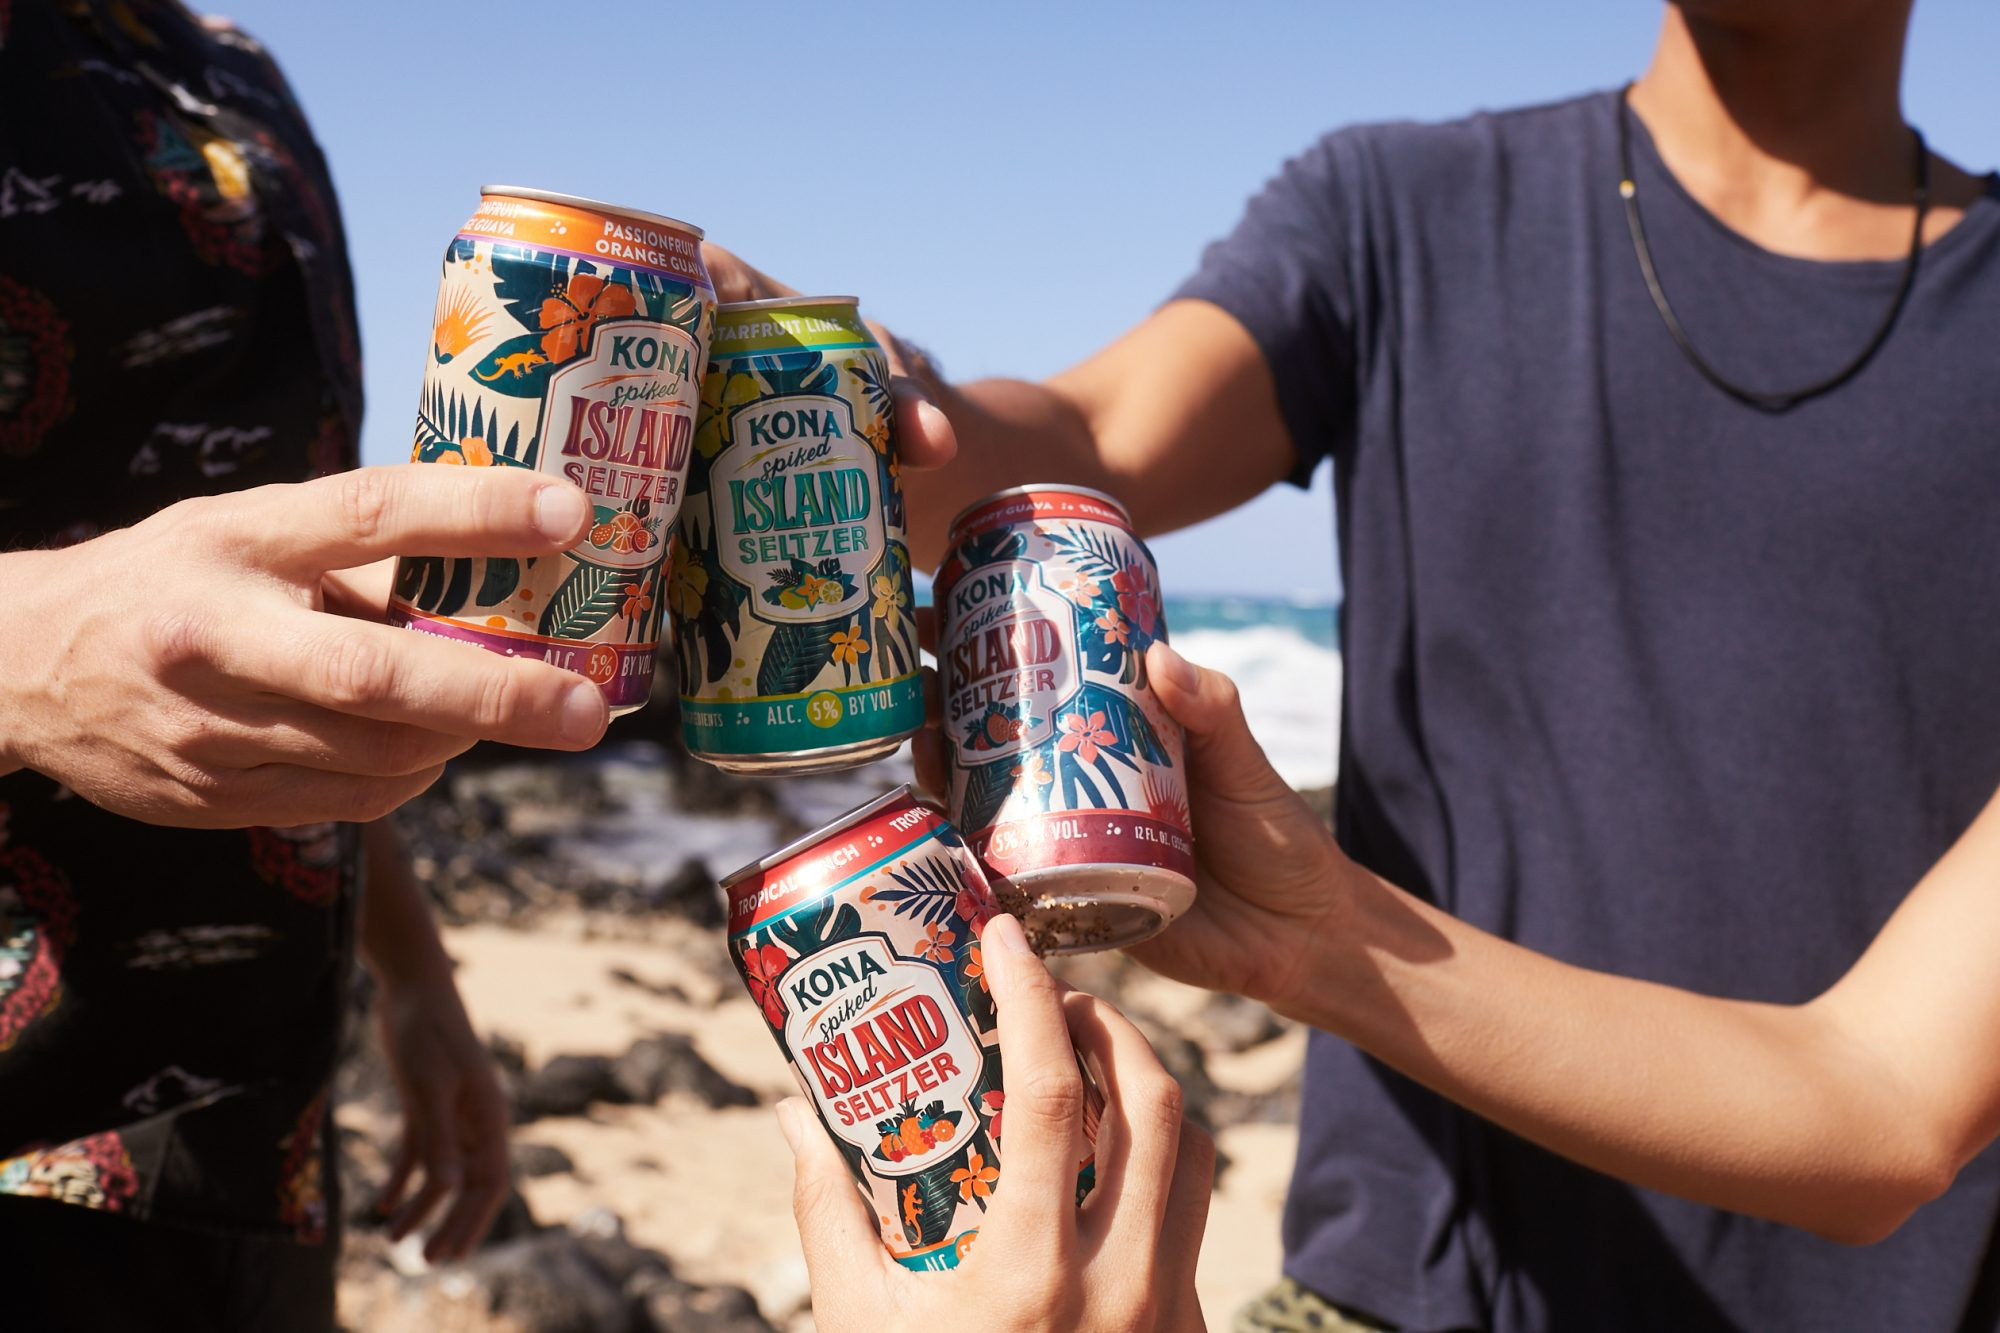 Four people toasting with different cans of Kona Spiked Island Seltzer